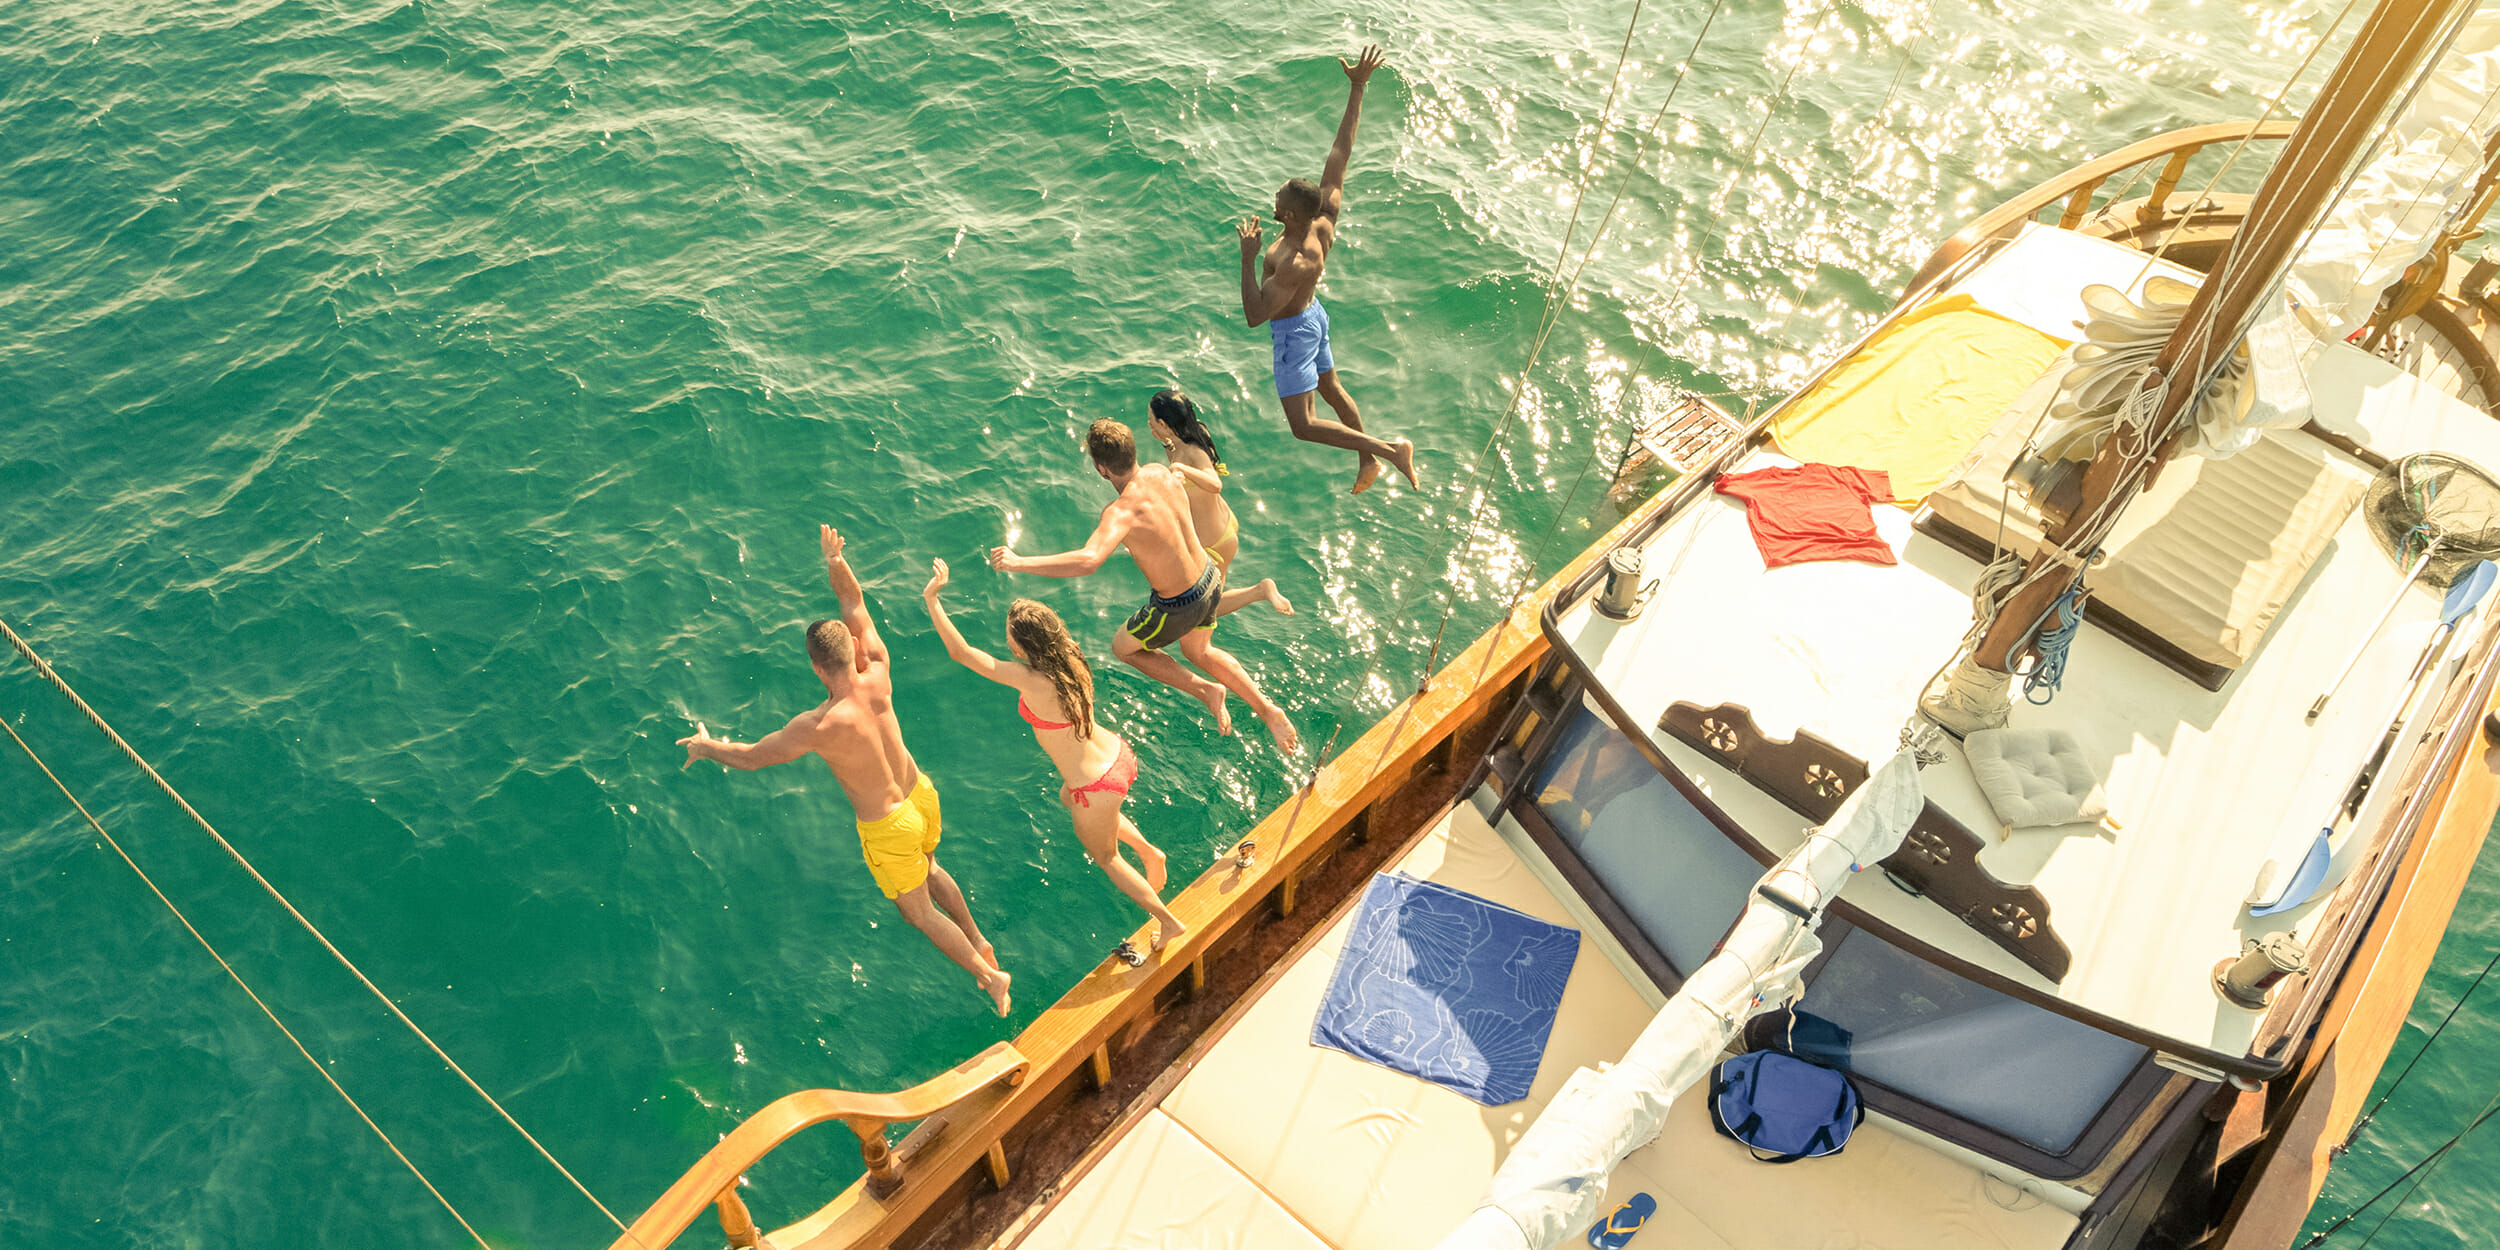 People jumping off of a boat into the water